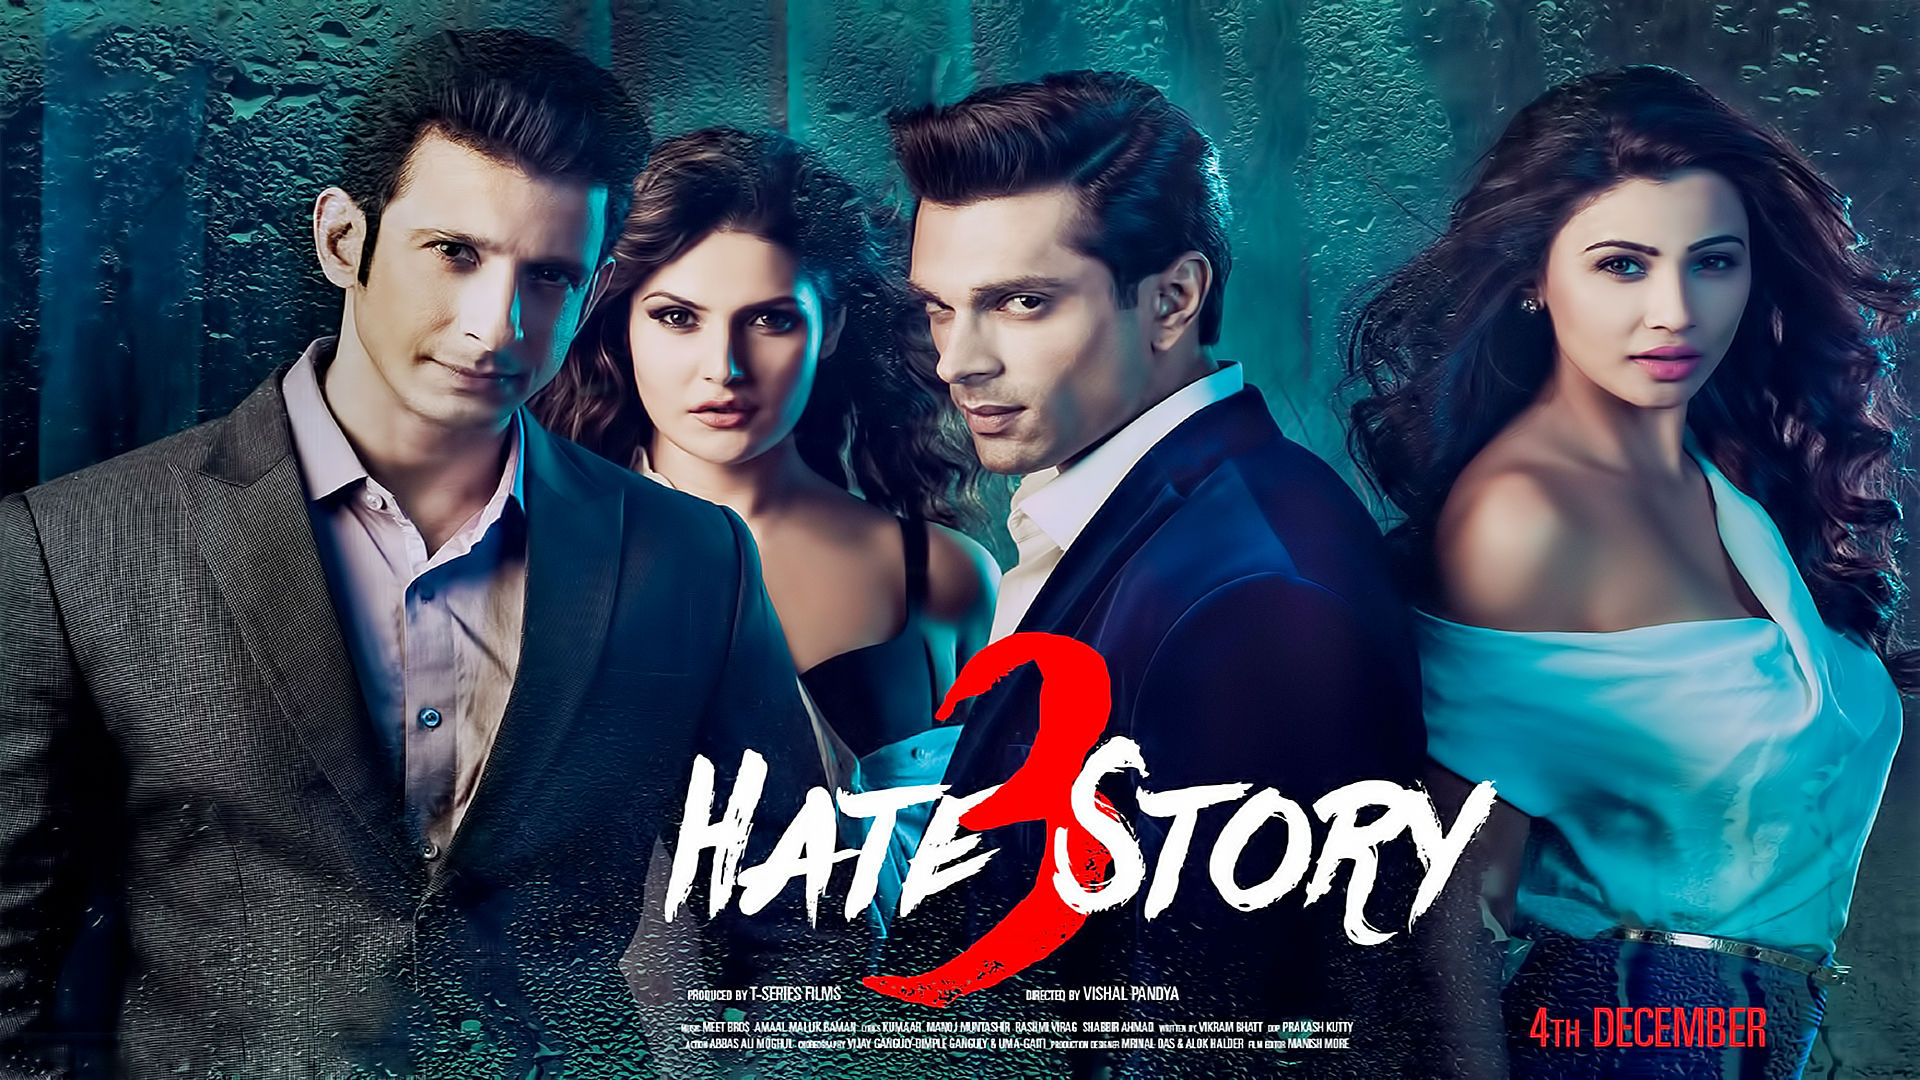 hate-Story-3-poster-image-thriller-trailer